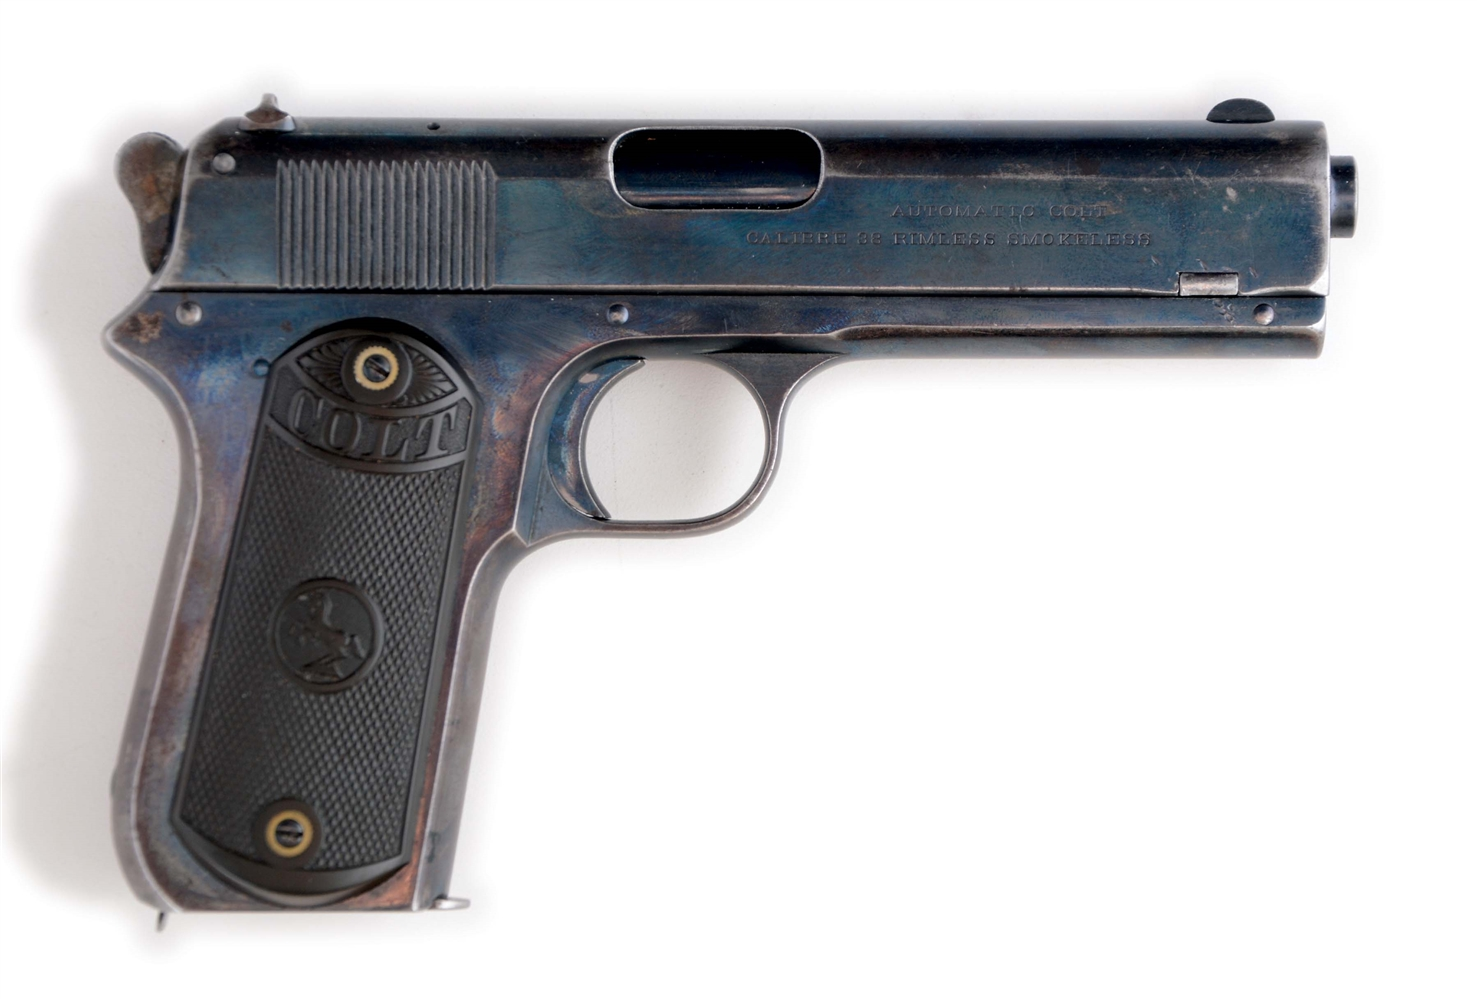 (C) COLT MODEL 1903 EXPOSED HAMMER SEMI-AUTOMATIC PISTOL (1908).